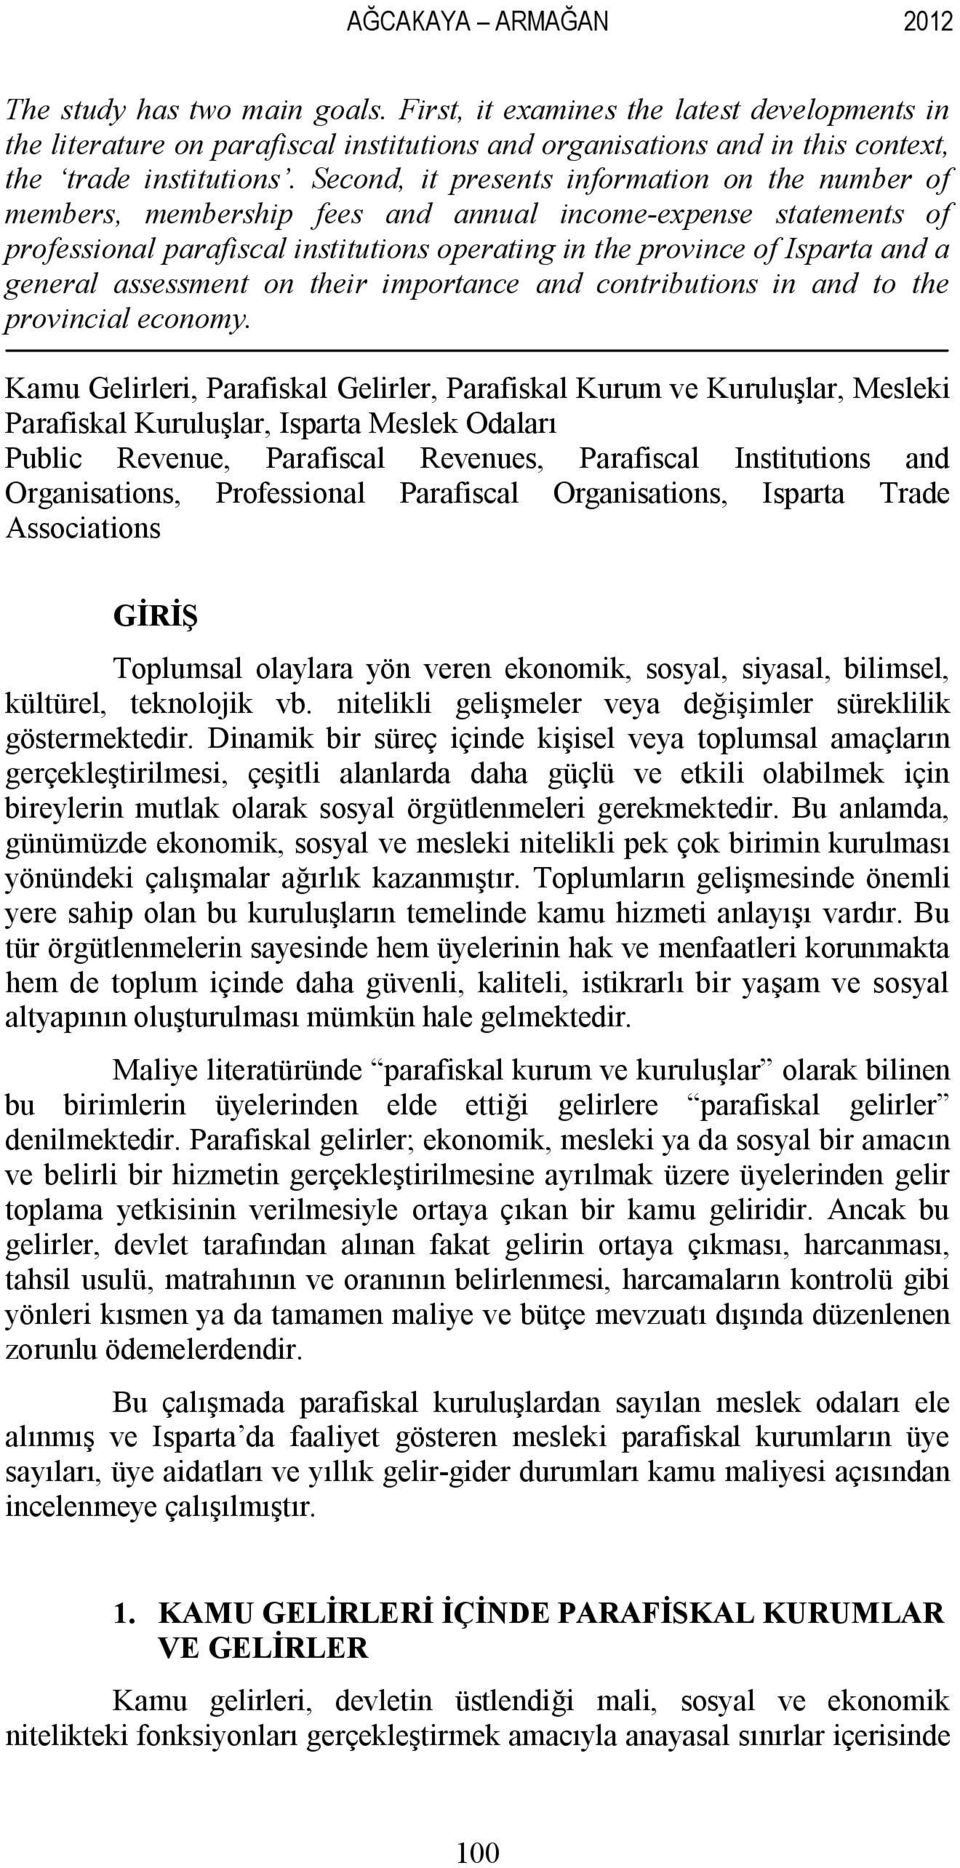 Second, it presents information on the number of members, membership fees and annual income-expense statements of professional parafiscal institutions operating in the province of Isparta and a